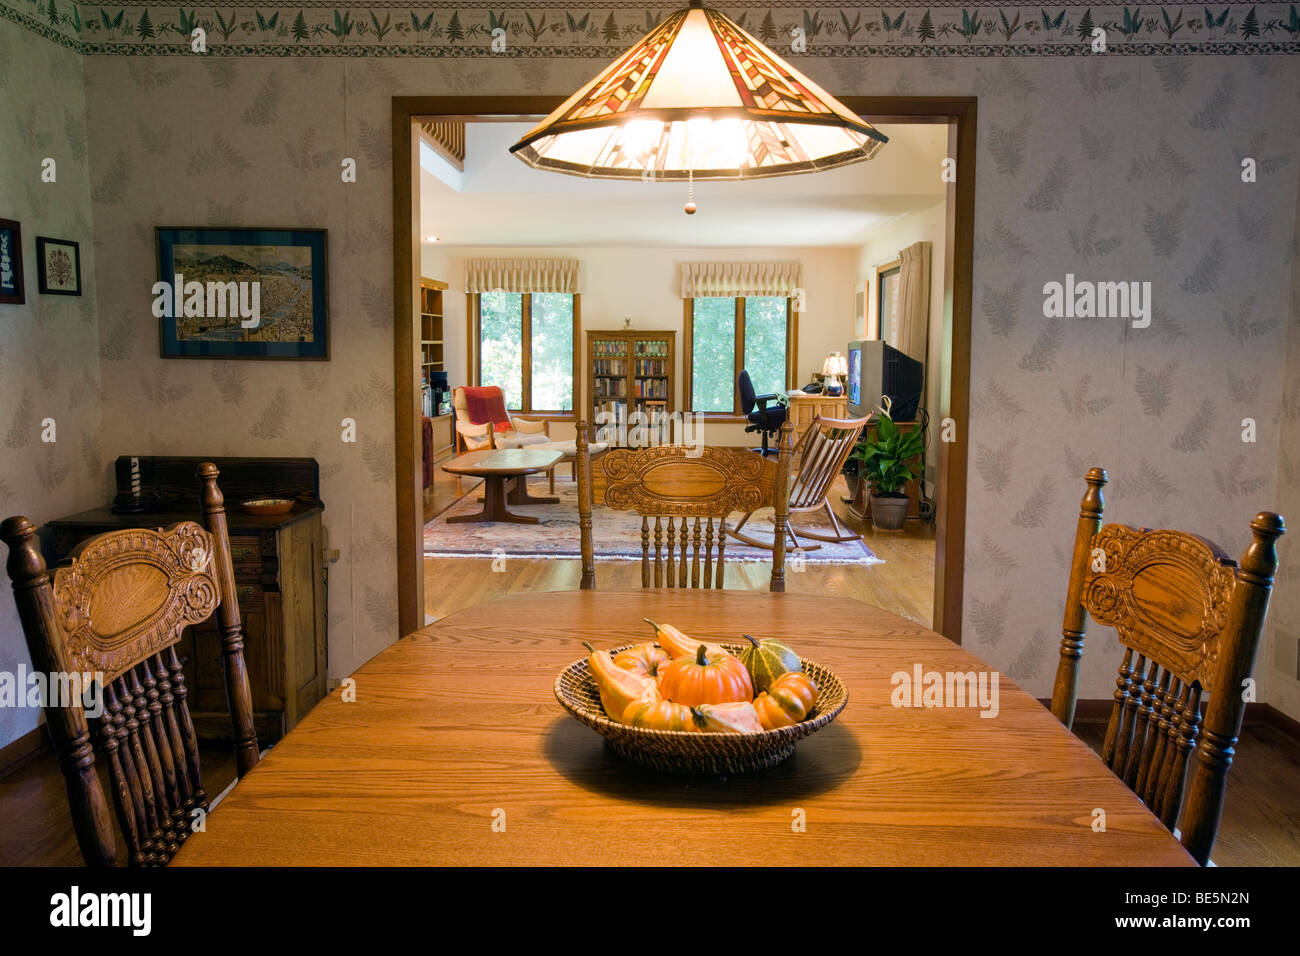 Interior view of the dining room in an upscale suburban home. - Stock Image